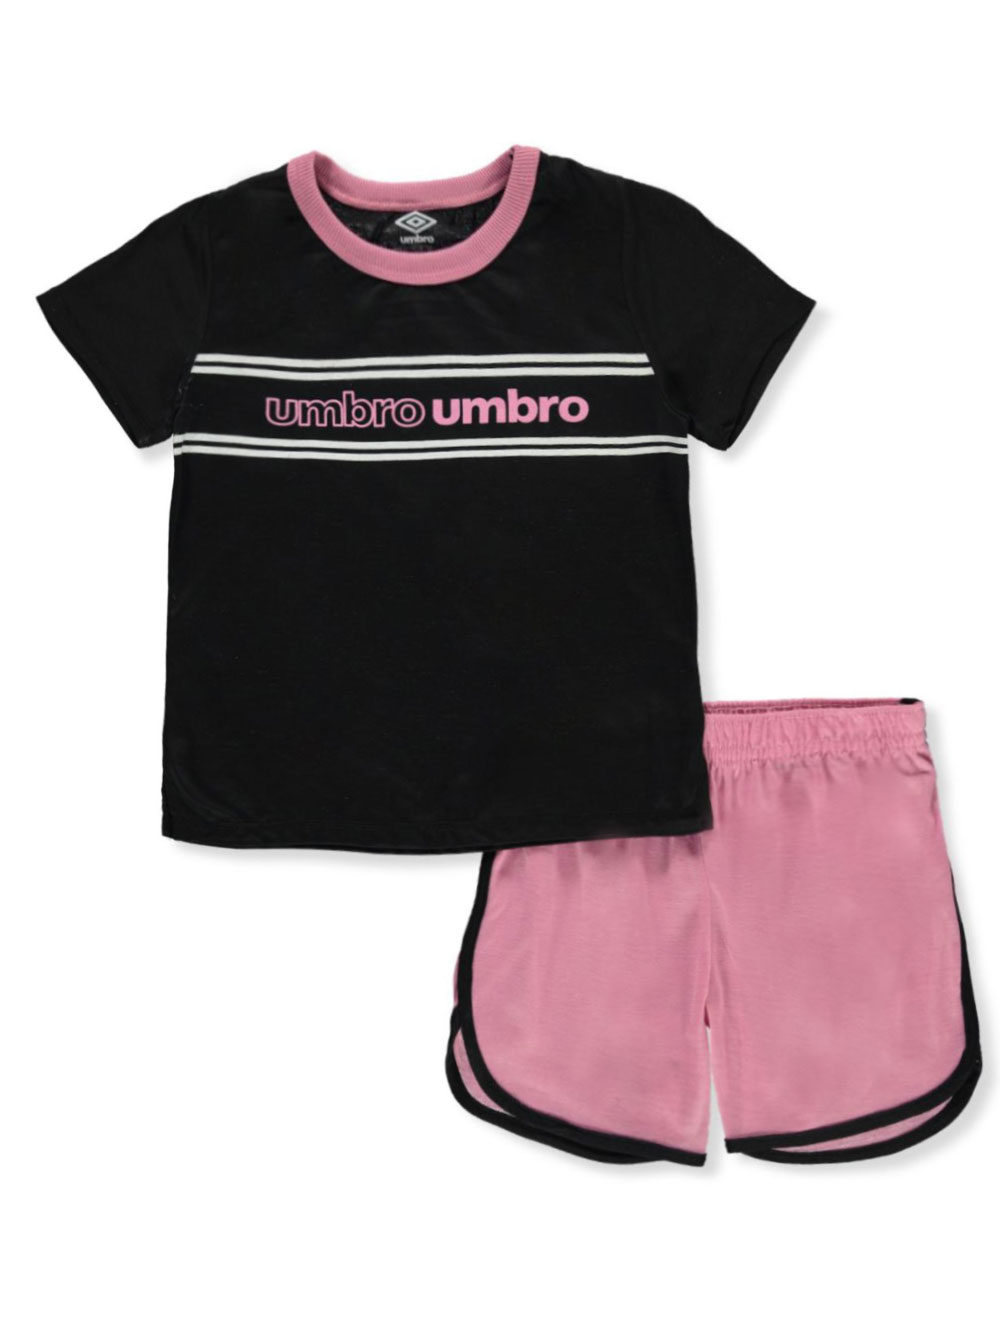 Umbro Pajamas